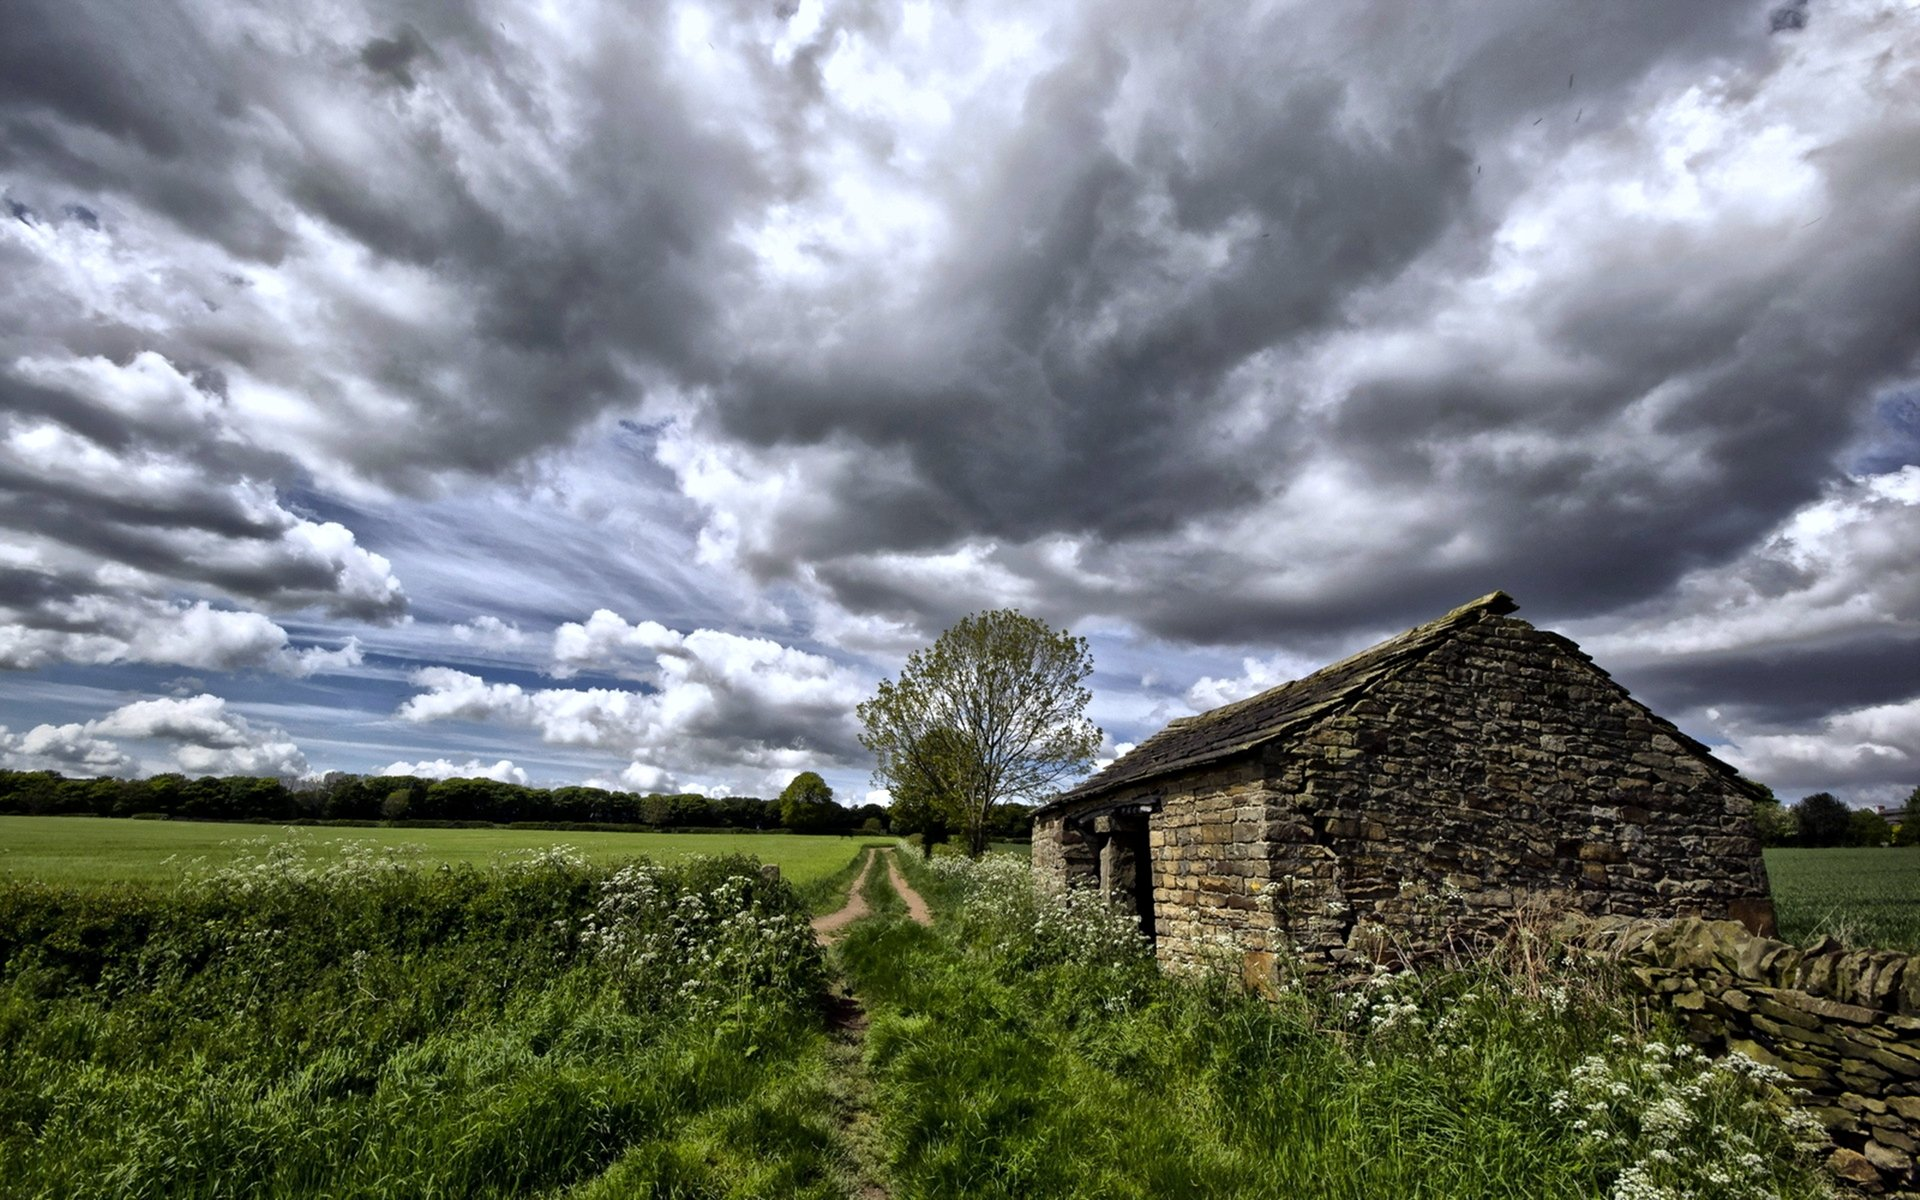 earth road fields countryside - photo #46